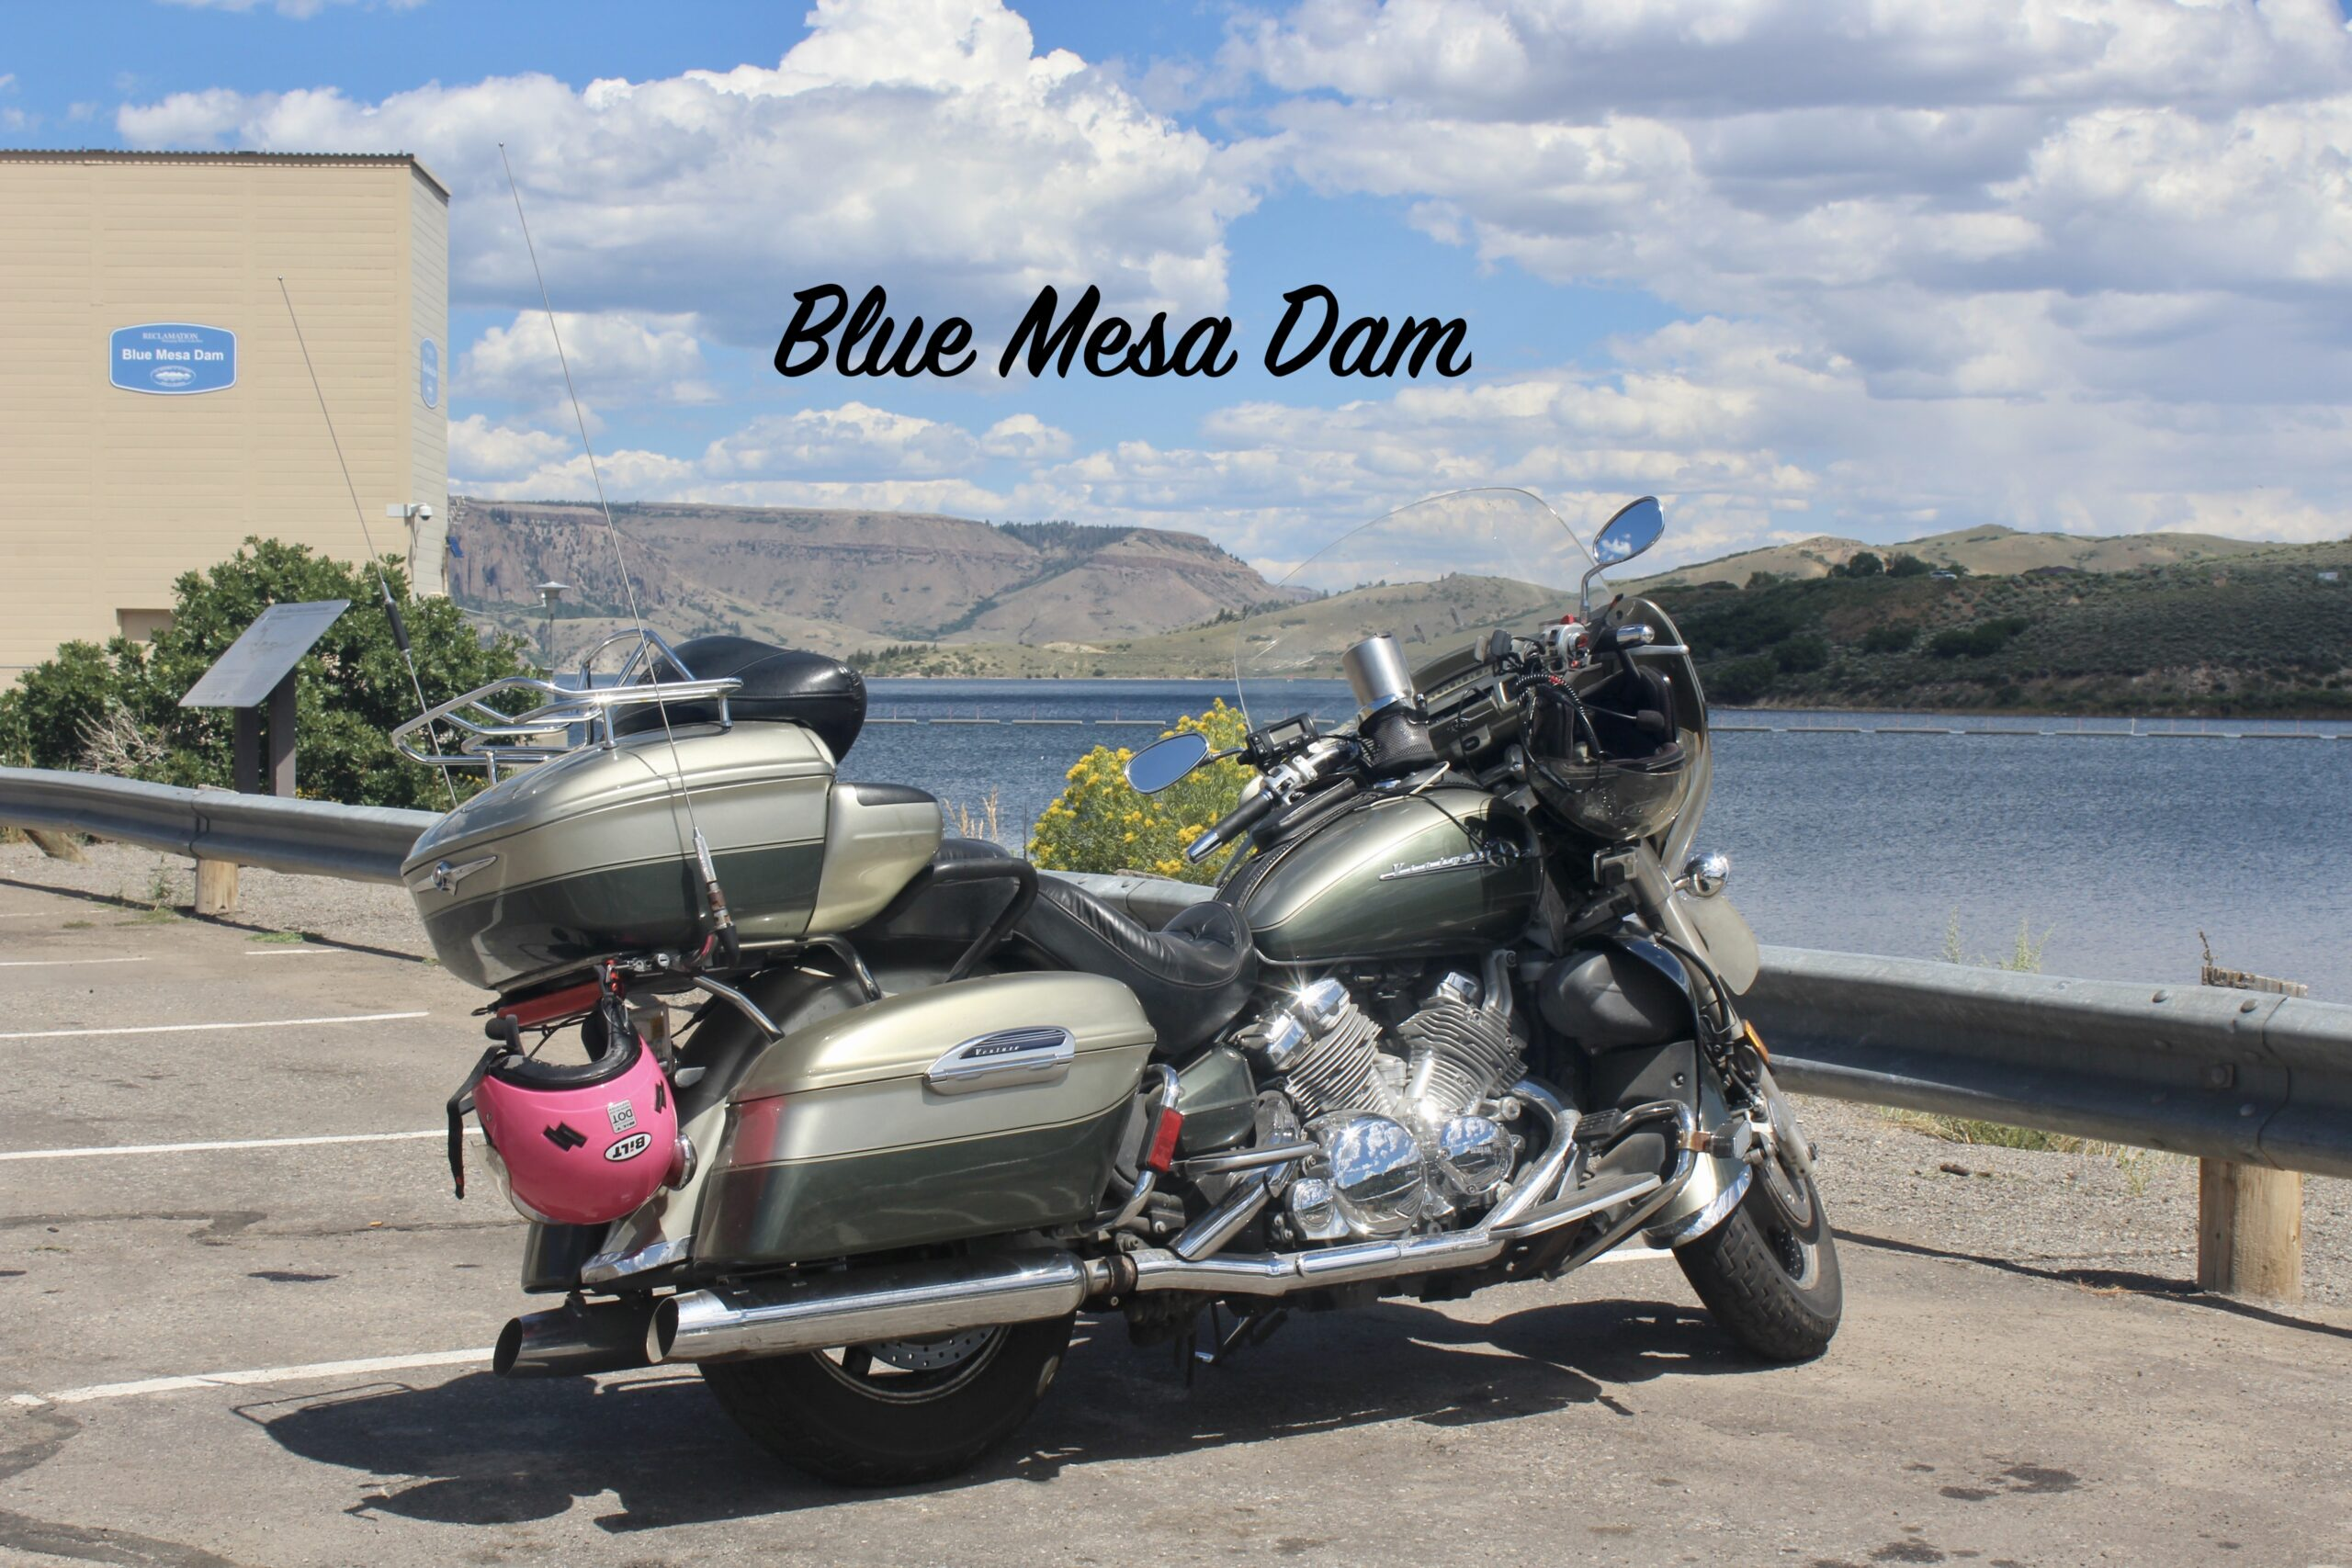 Blue Mesa Dam With Motorcycle